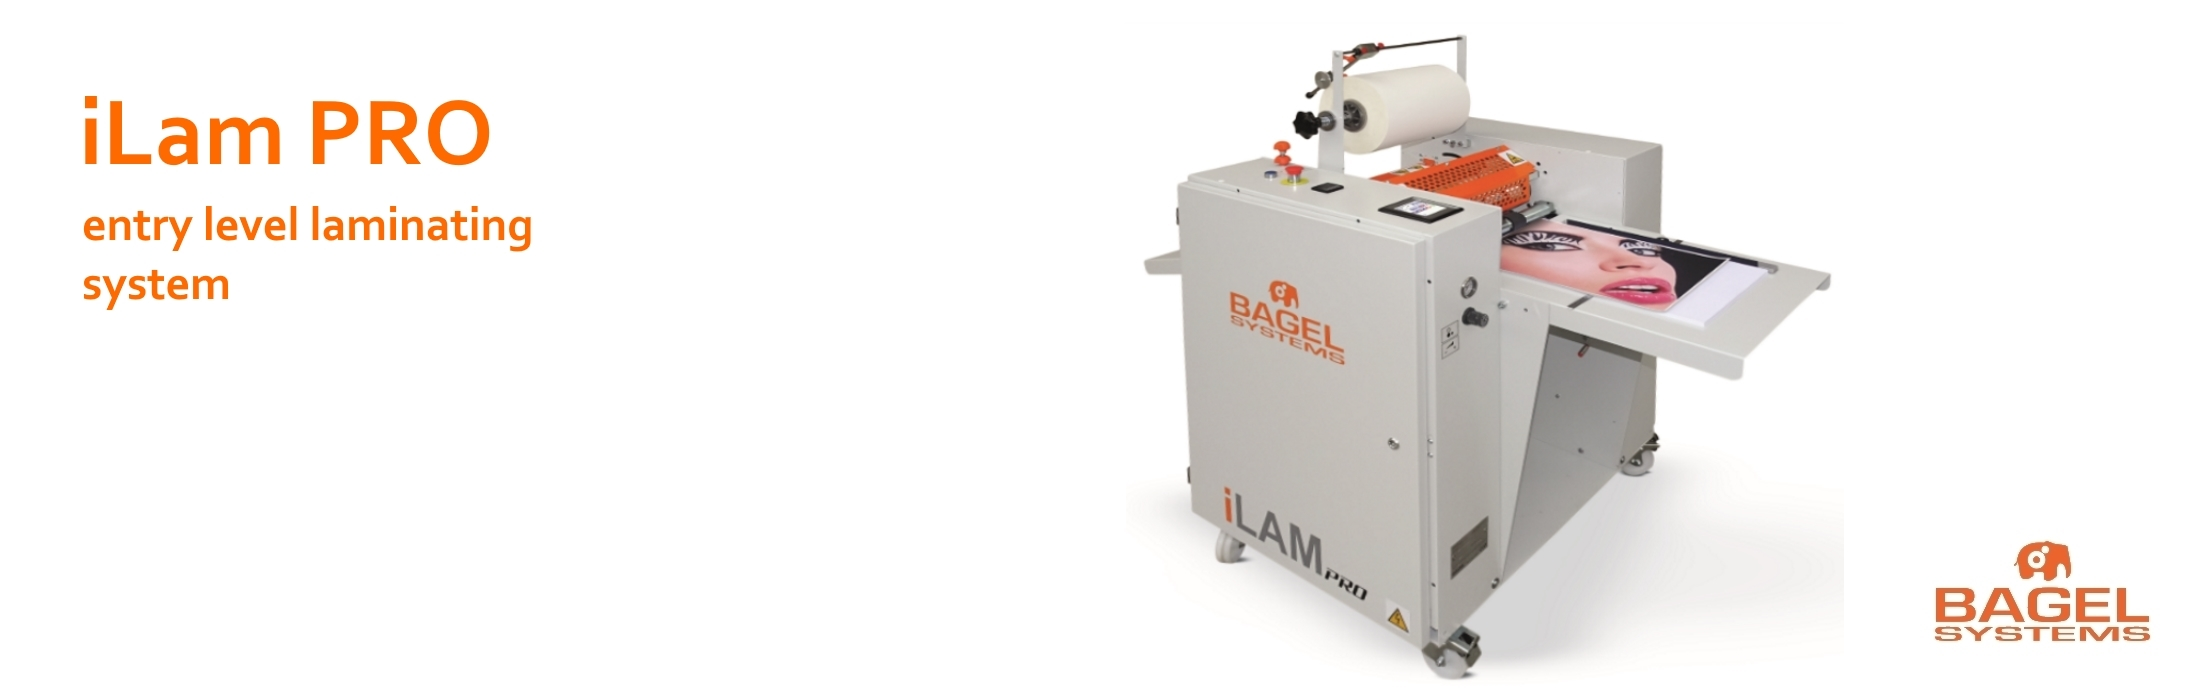 Bagel-systems-Ilam-SRA3